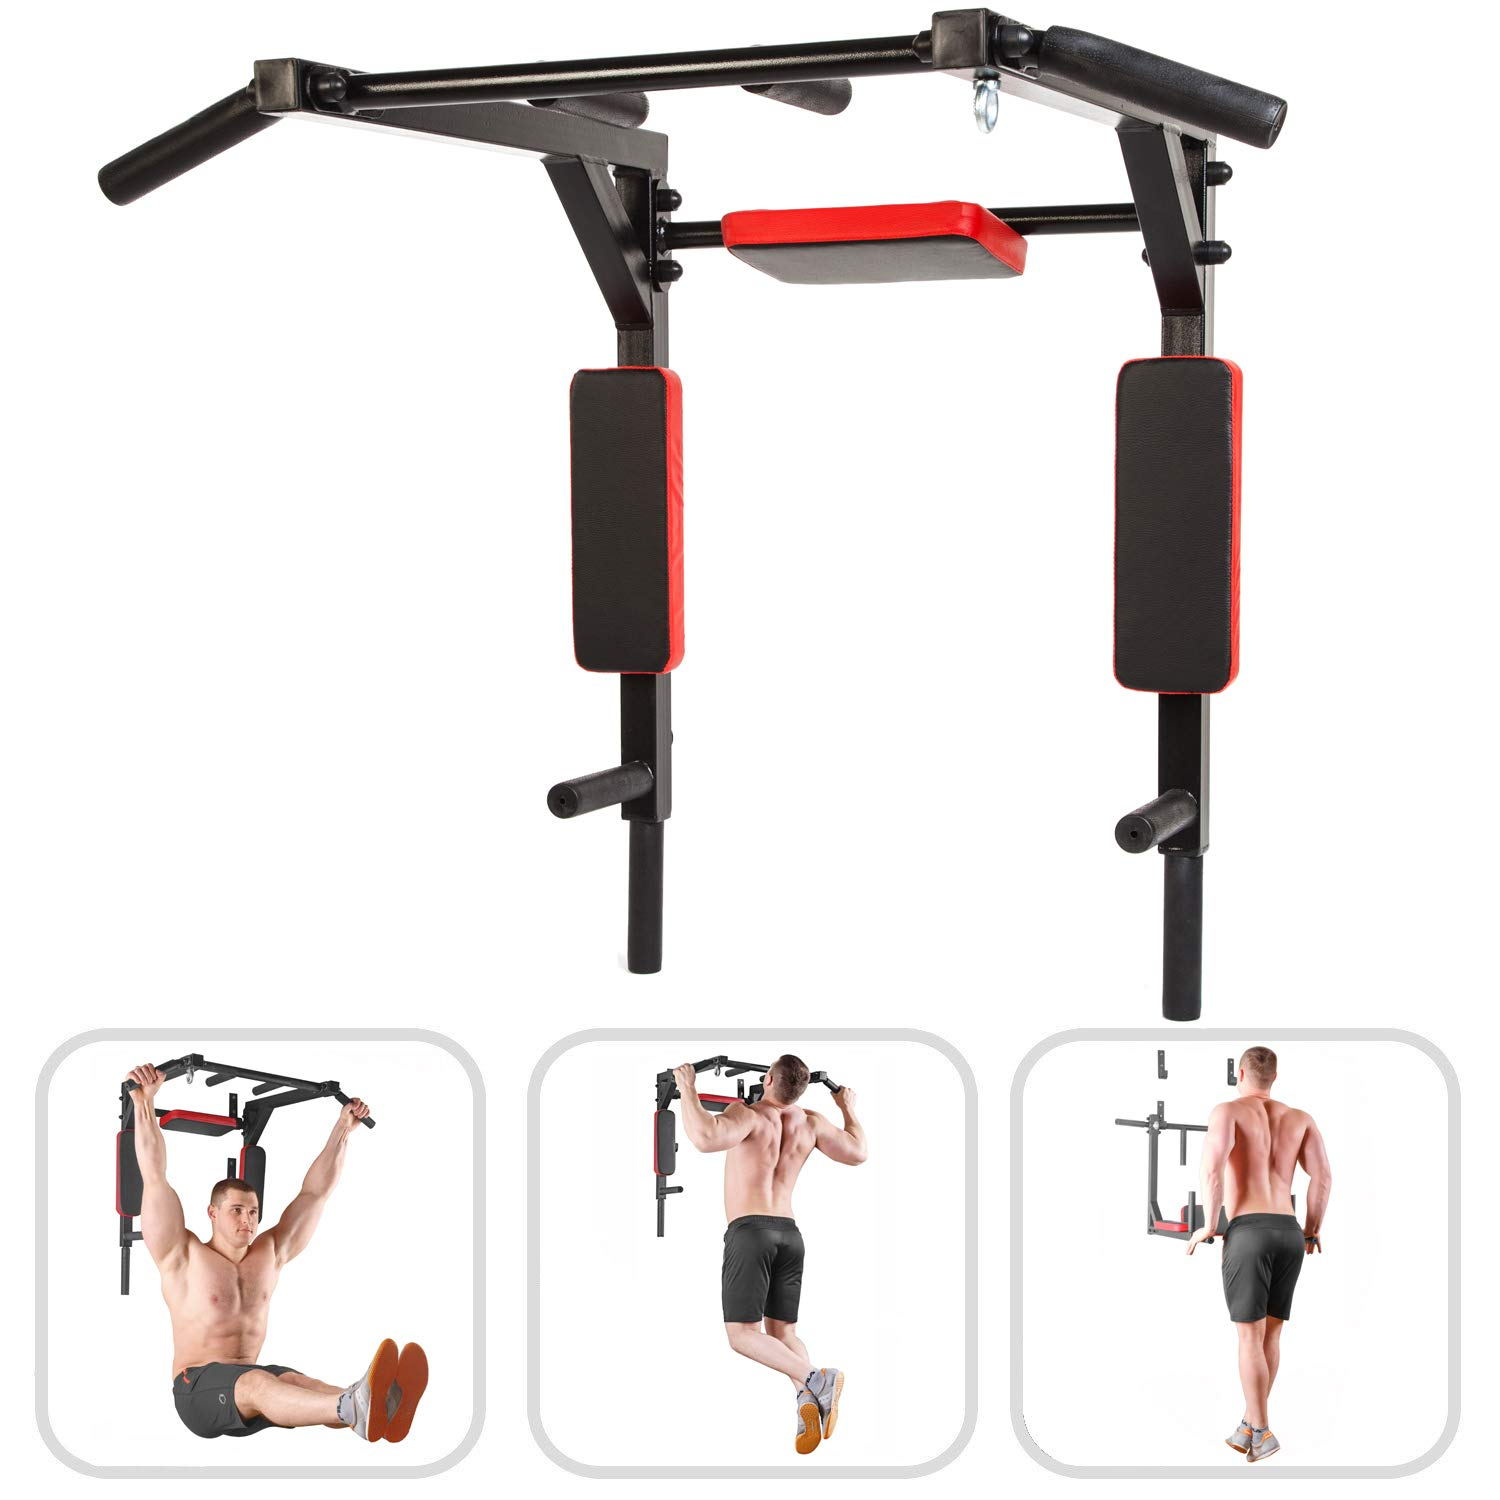 Wall Mounted Pull Up Bar - Pullup Bar Wall Mount - Chin Up Bar - Pull Up Bars and Dip Bar - Pullup and Dip Bar - Dip Station Pull Bar - Pullup Bars Outdoor and Home Room or Garage Gym Multi Grip - Pul